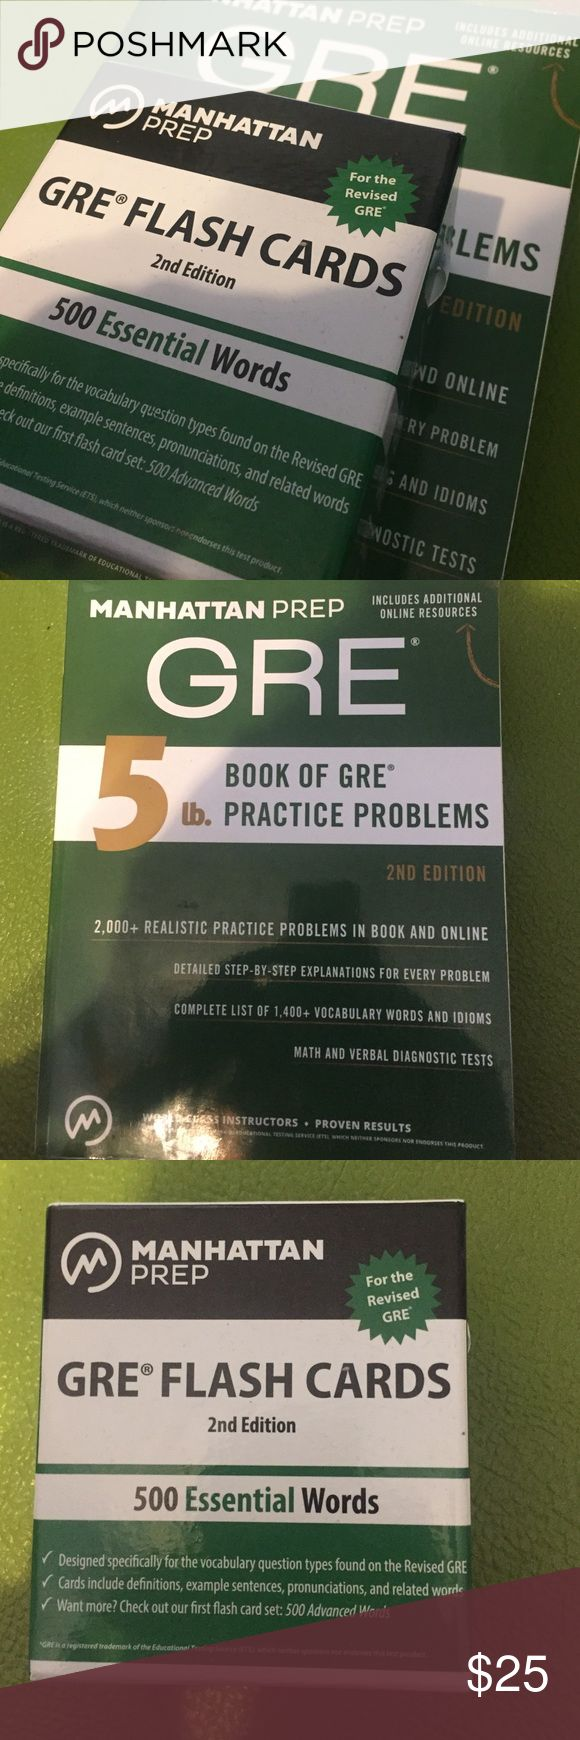 Manhattan GRE book accompanied with flash cards This is the top of the line GRE equipment to get you into Grad school. The 500 essential word flash cards come with a ring to clip each card onto and is also alphabetized. The GRE book is 5lbs and comes with a plethora of practice problems. Other